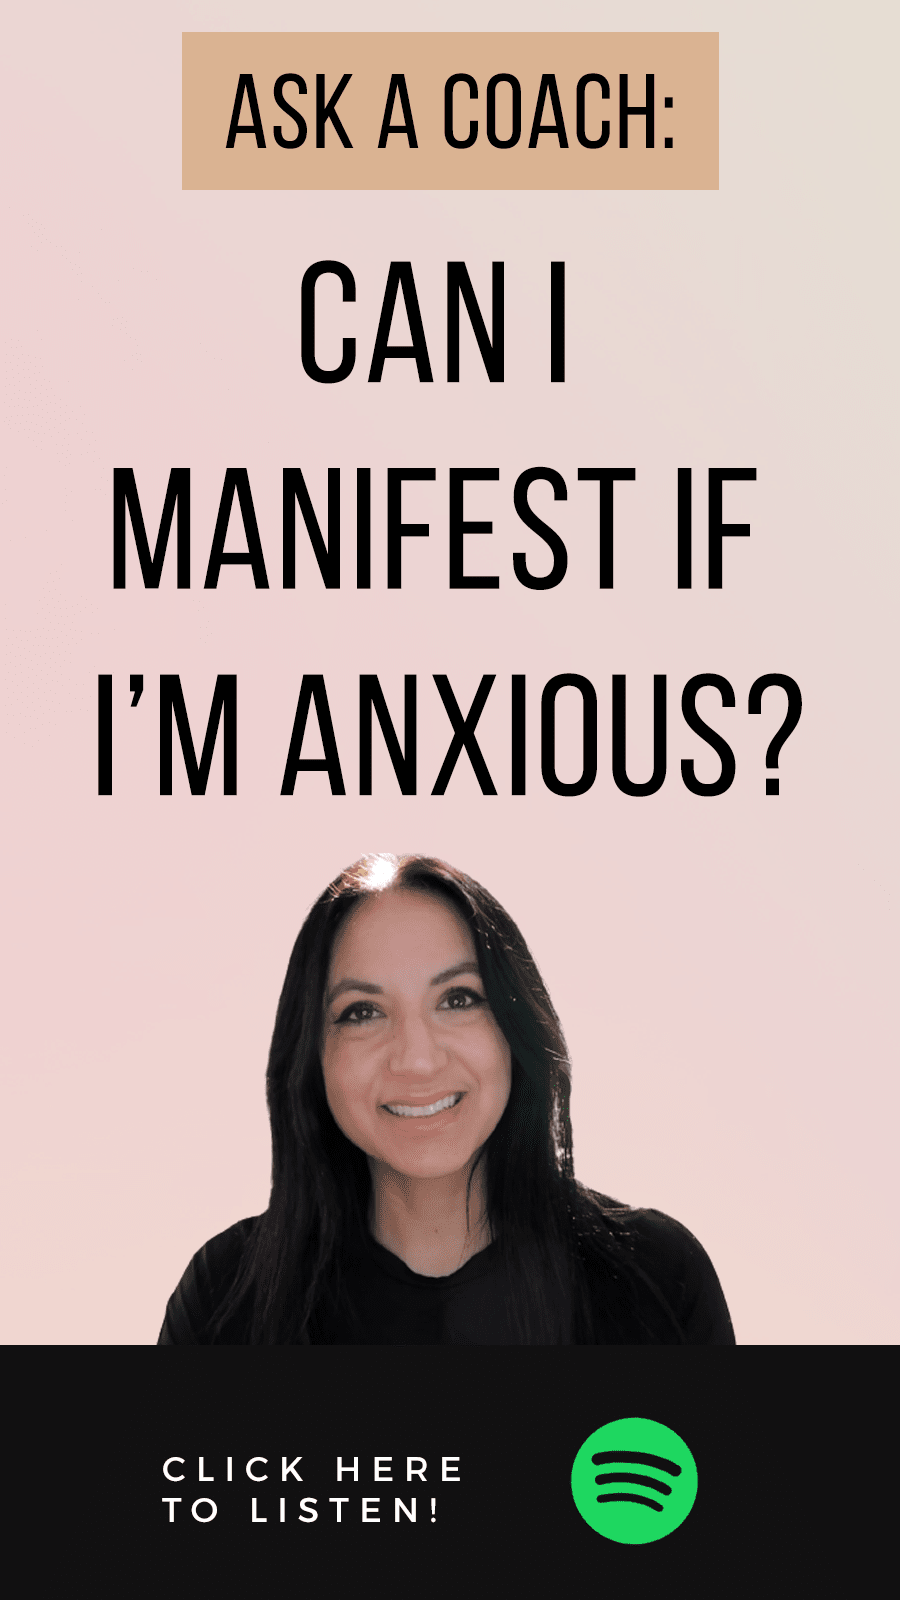 Jenn Stevens with text Episode #47: Can I Manifest If I'm Anxious?